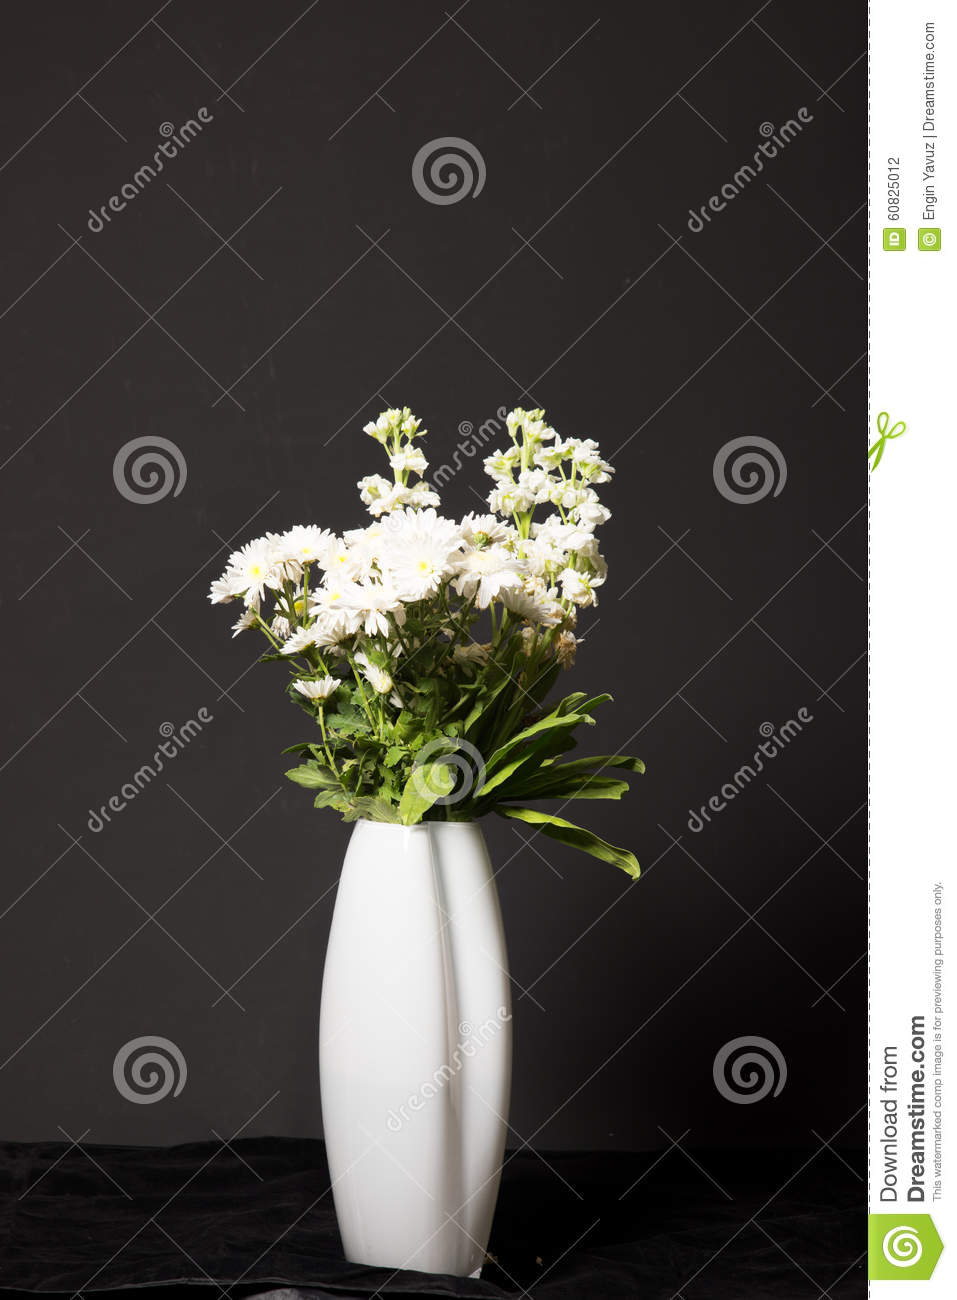 Flowers with Black Background